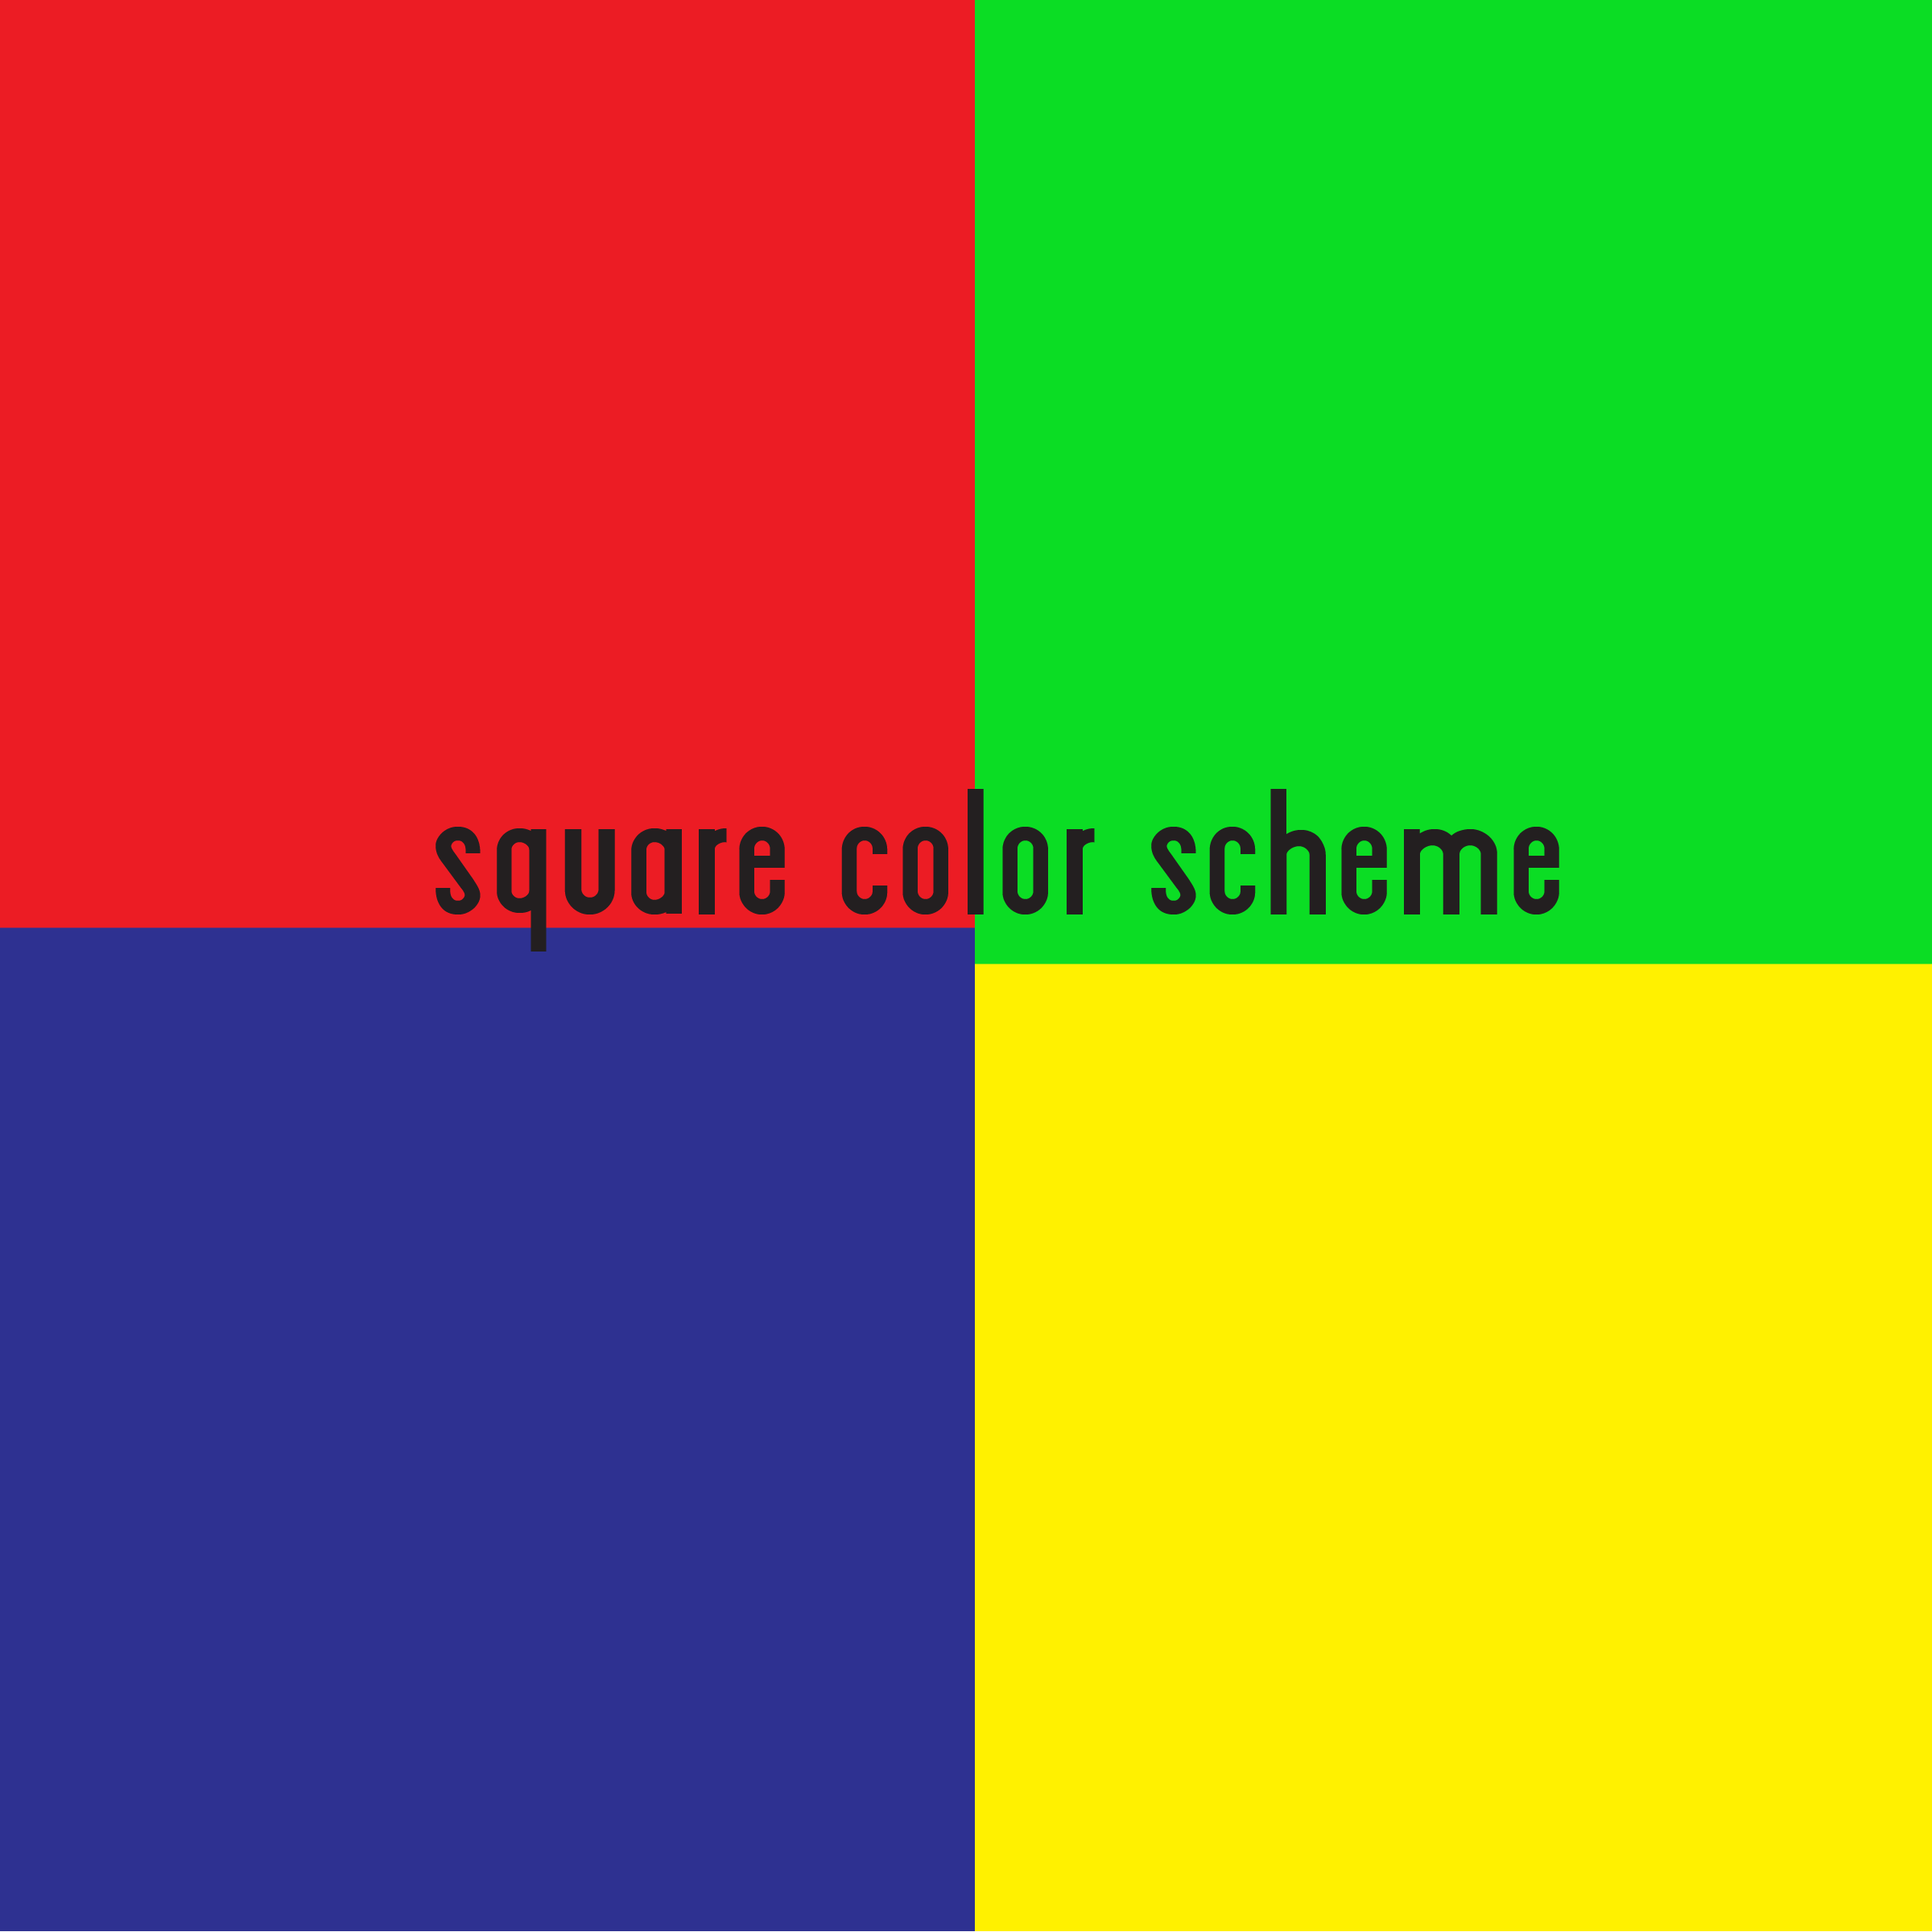 The Square Color Scheme Is Similar To The Rectangle But